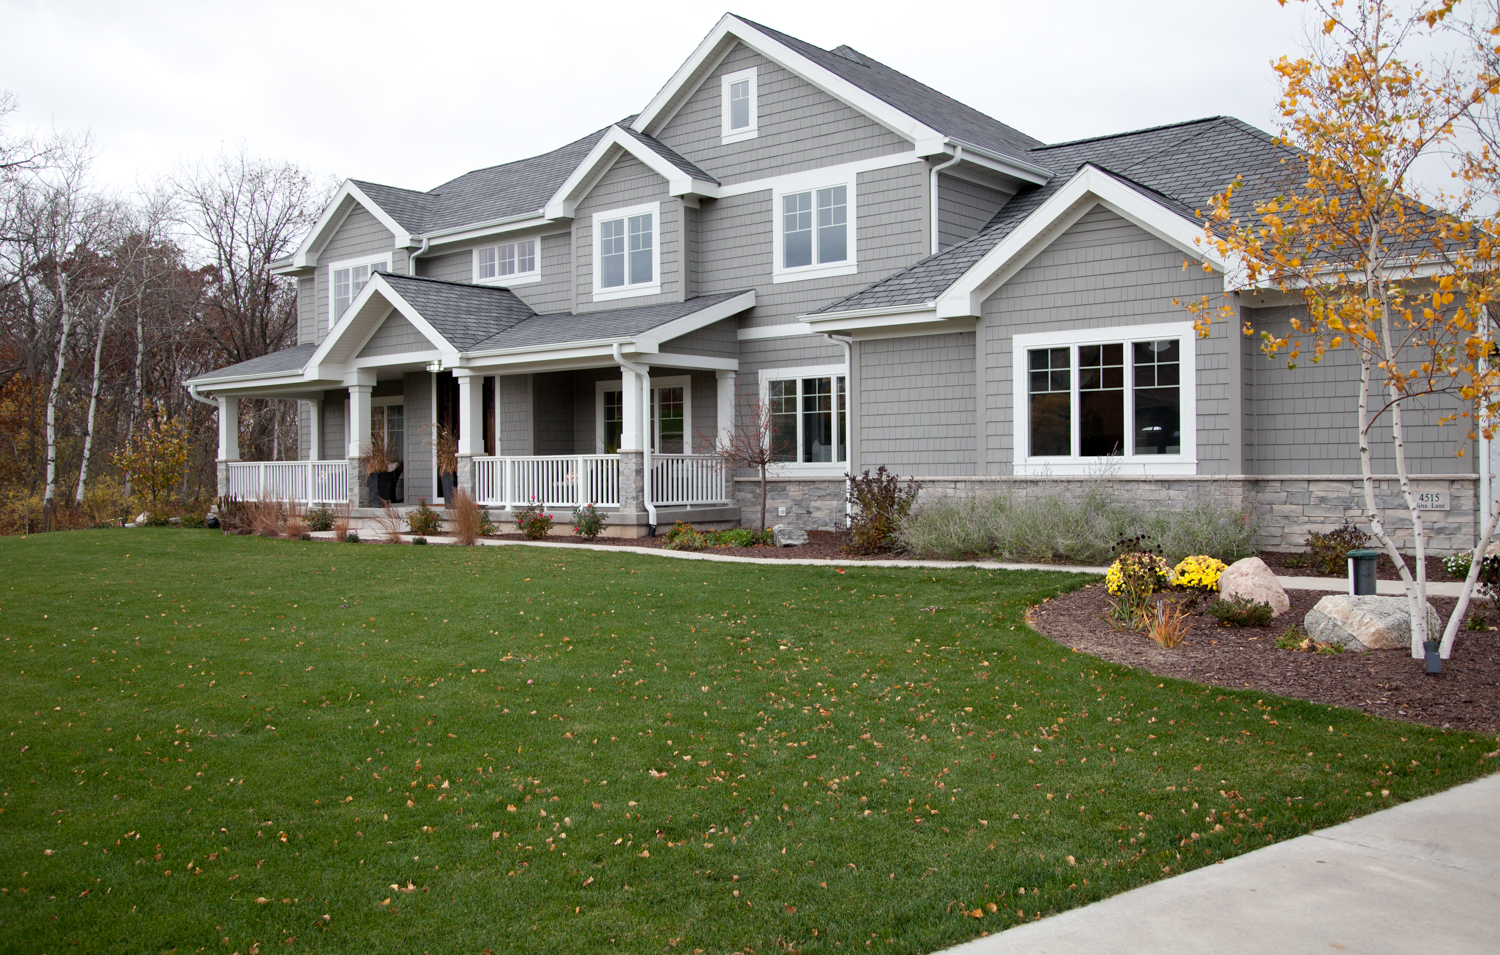 Beautiful country home exterior renovations madison for Exterior home renovations